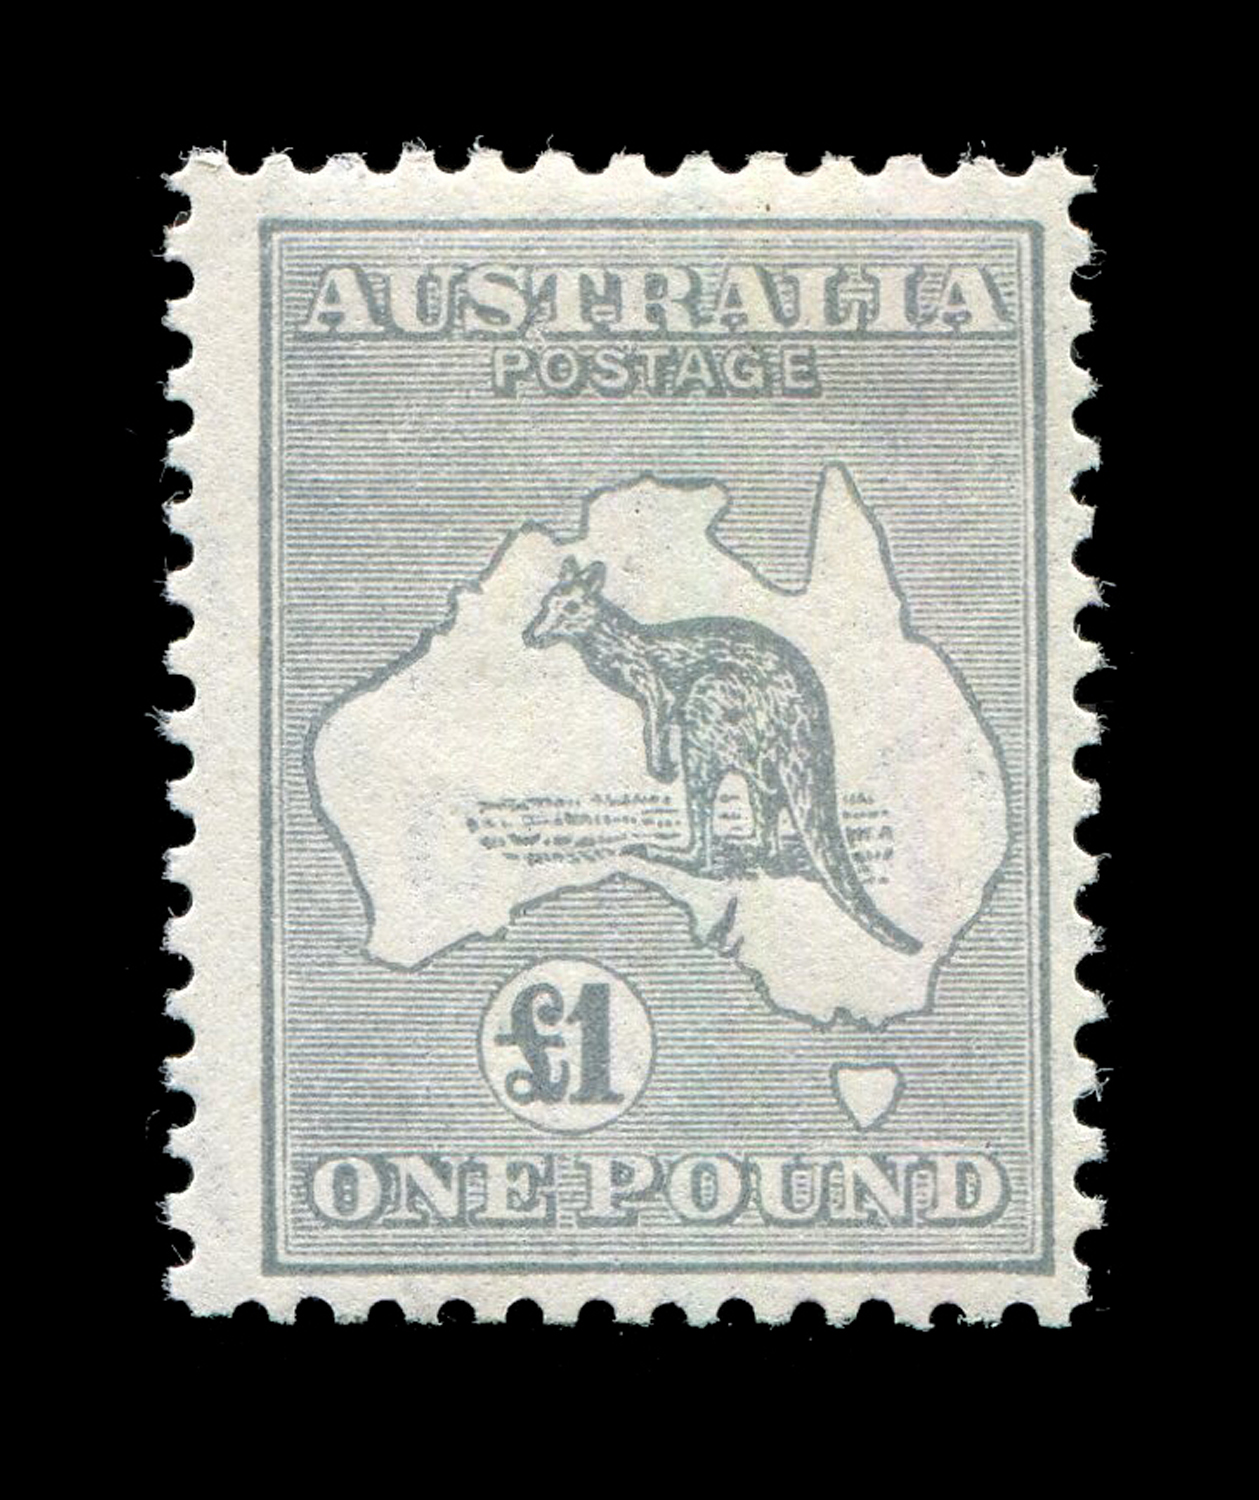 Lot 3012 - An Australia 1931-36 £1 grey stamp fine mint (SG 137).Buyer's Premium 29.4% (including VAT @ 20%) of